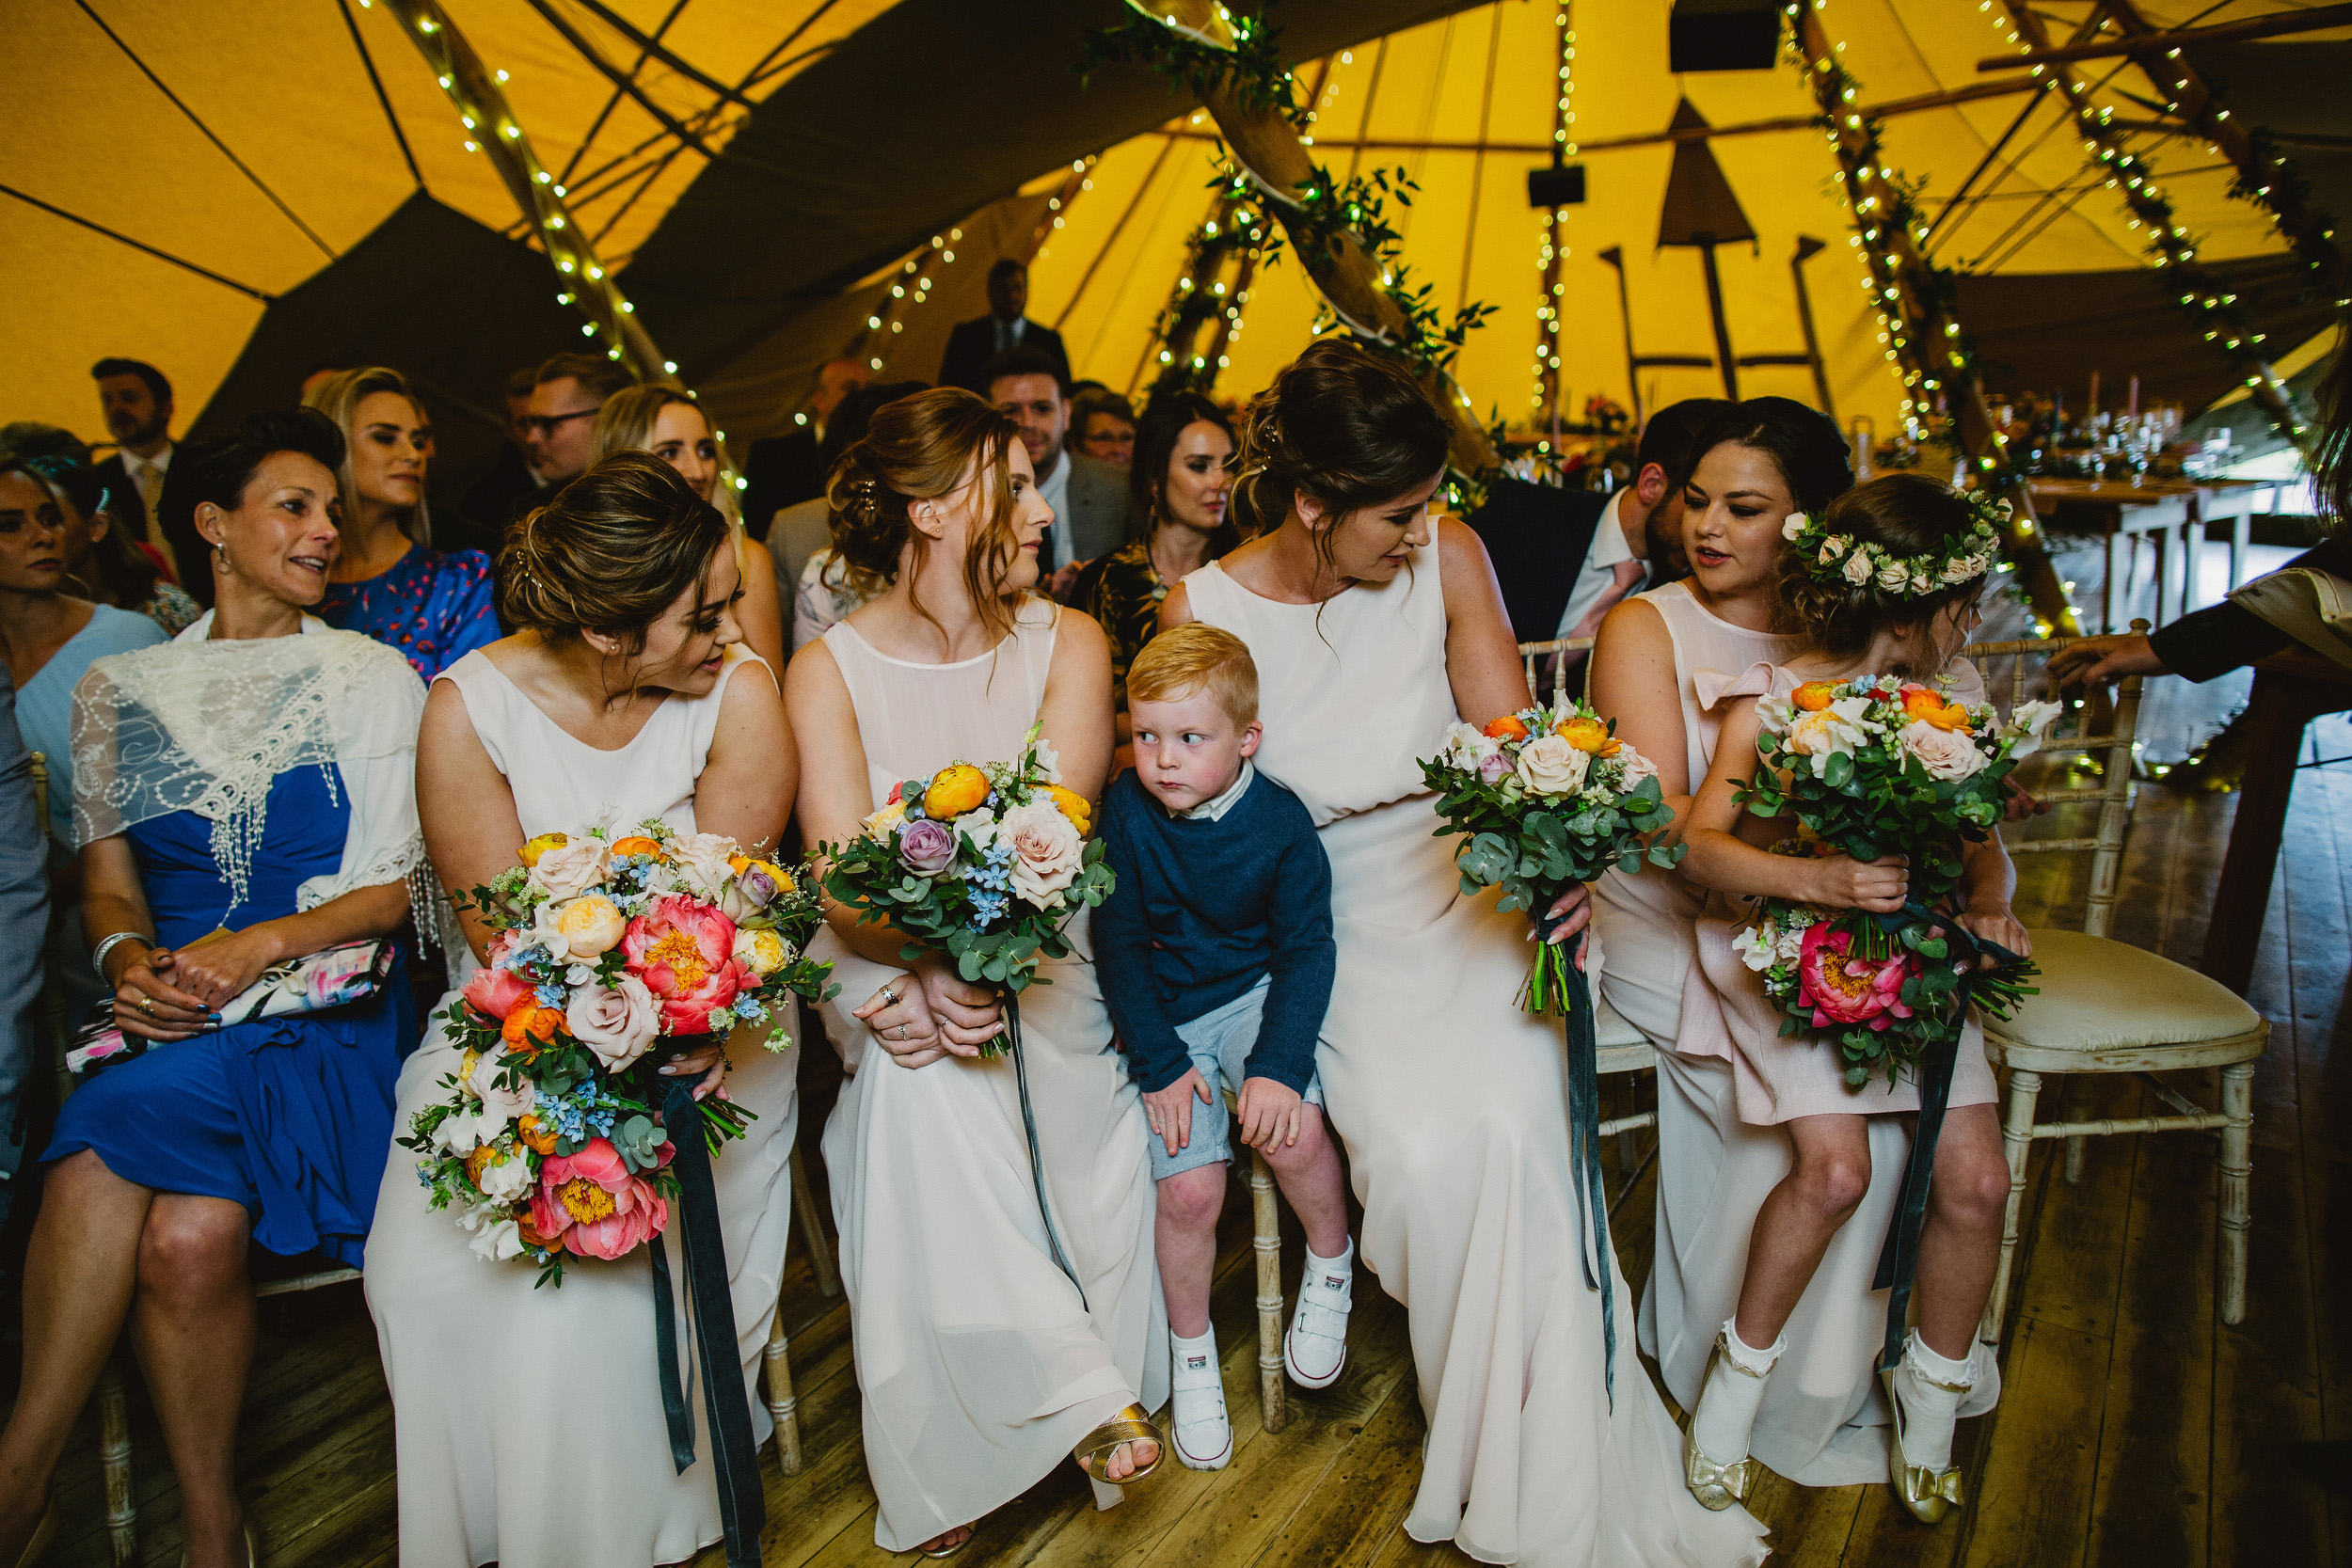 Gemma-Bohemian-Outdoor-Tipi-Wedding-Laid-Back-Relaxed-Family-Wedding-Kate-Beaumont-Astilbe-by-S6-Photography-Sheffield-8.jpg